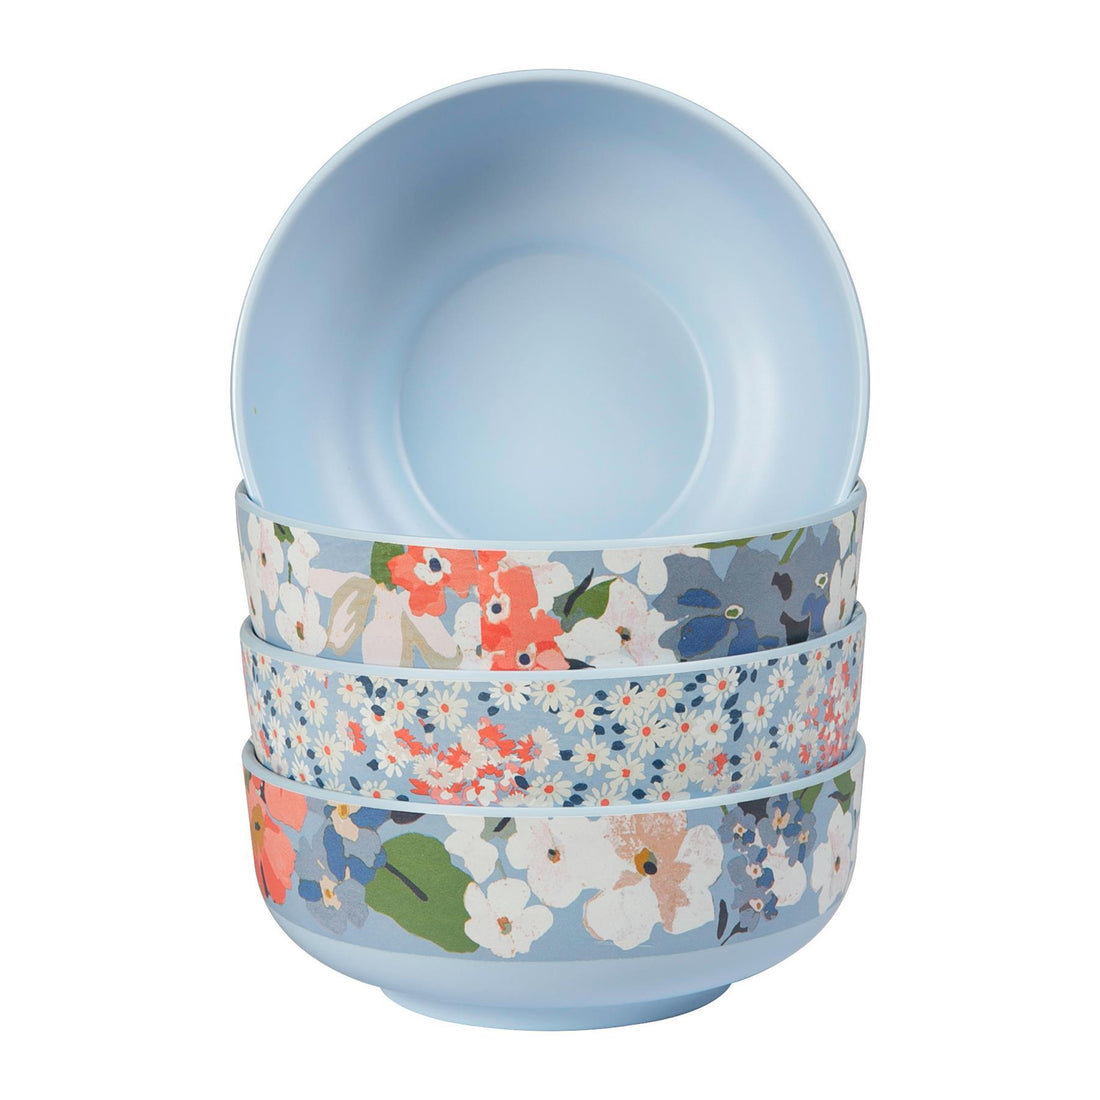 Joules Outdoor Dining Melamine Bowls - 15cm - Blue Floral - Pack of 4